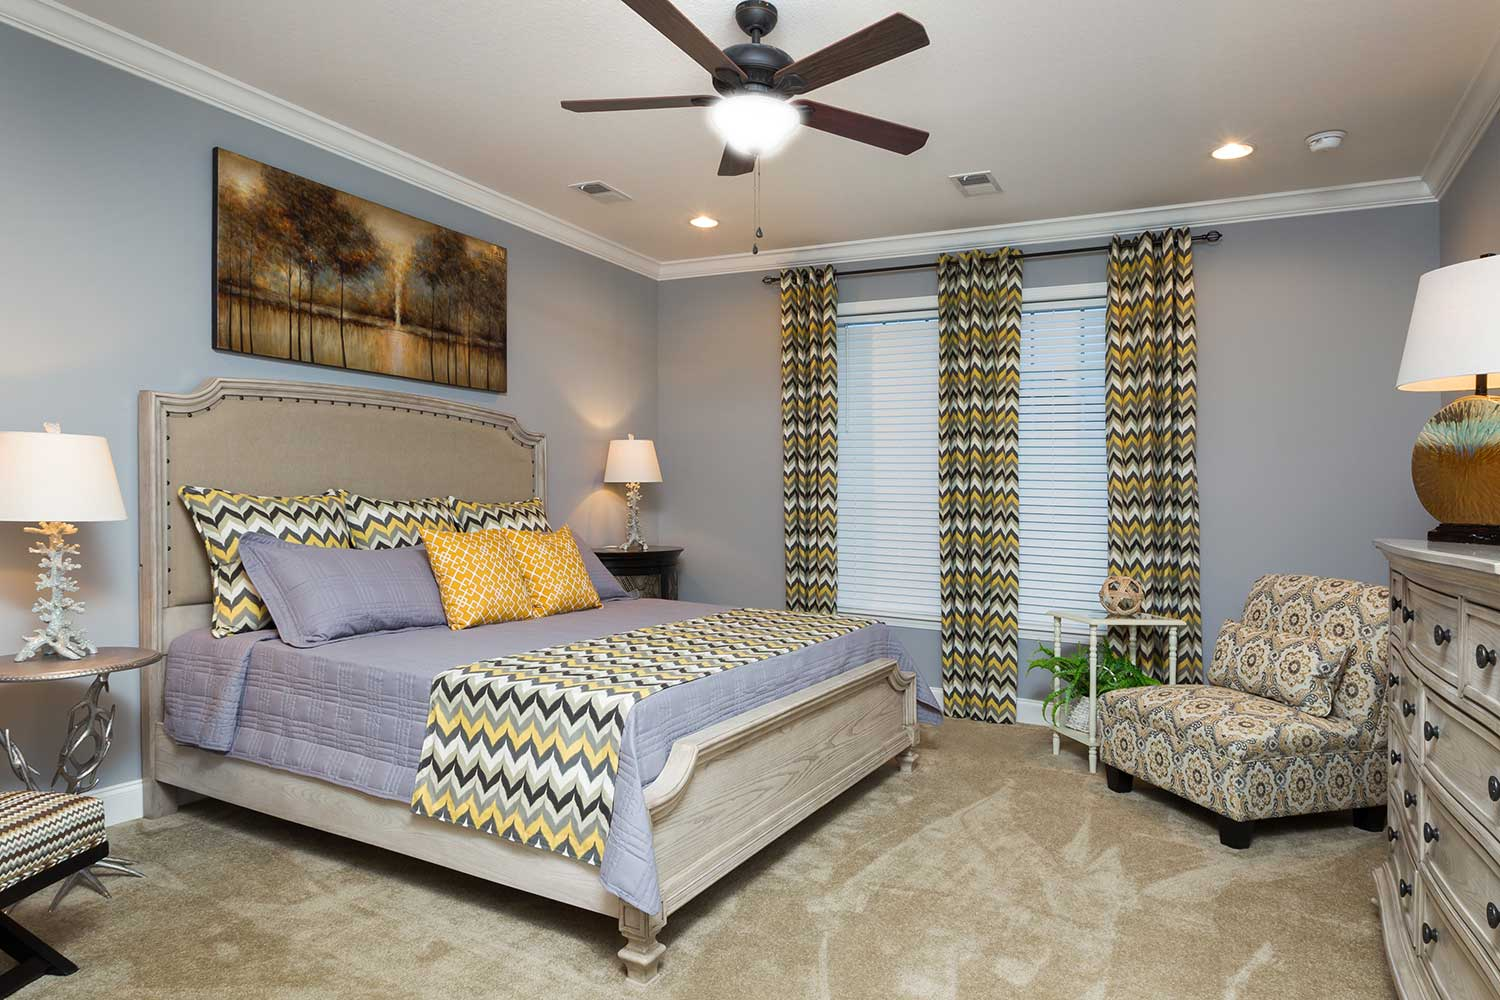 The bedroom of the Franklin Homes The Holly manufactured home from Affordable Homes of Crestview